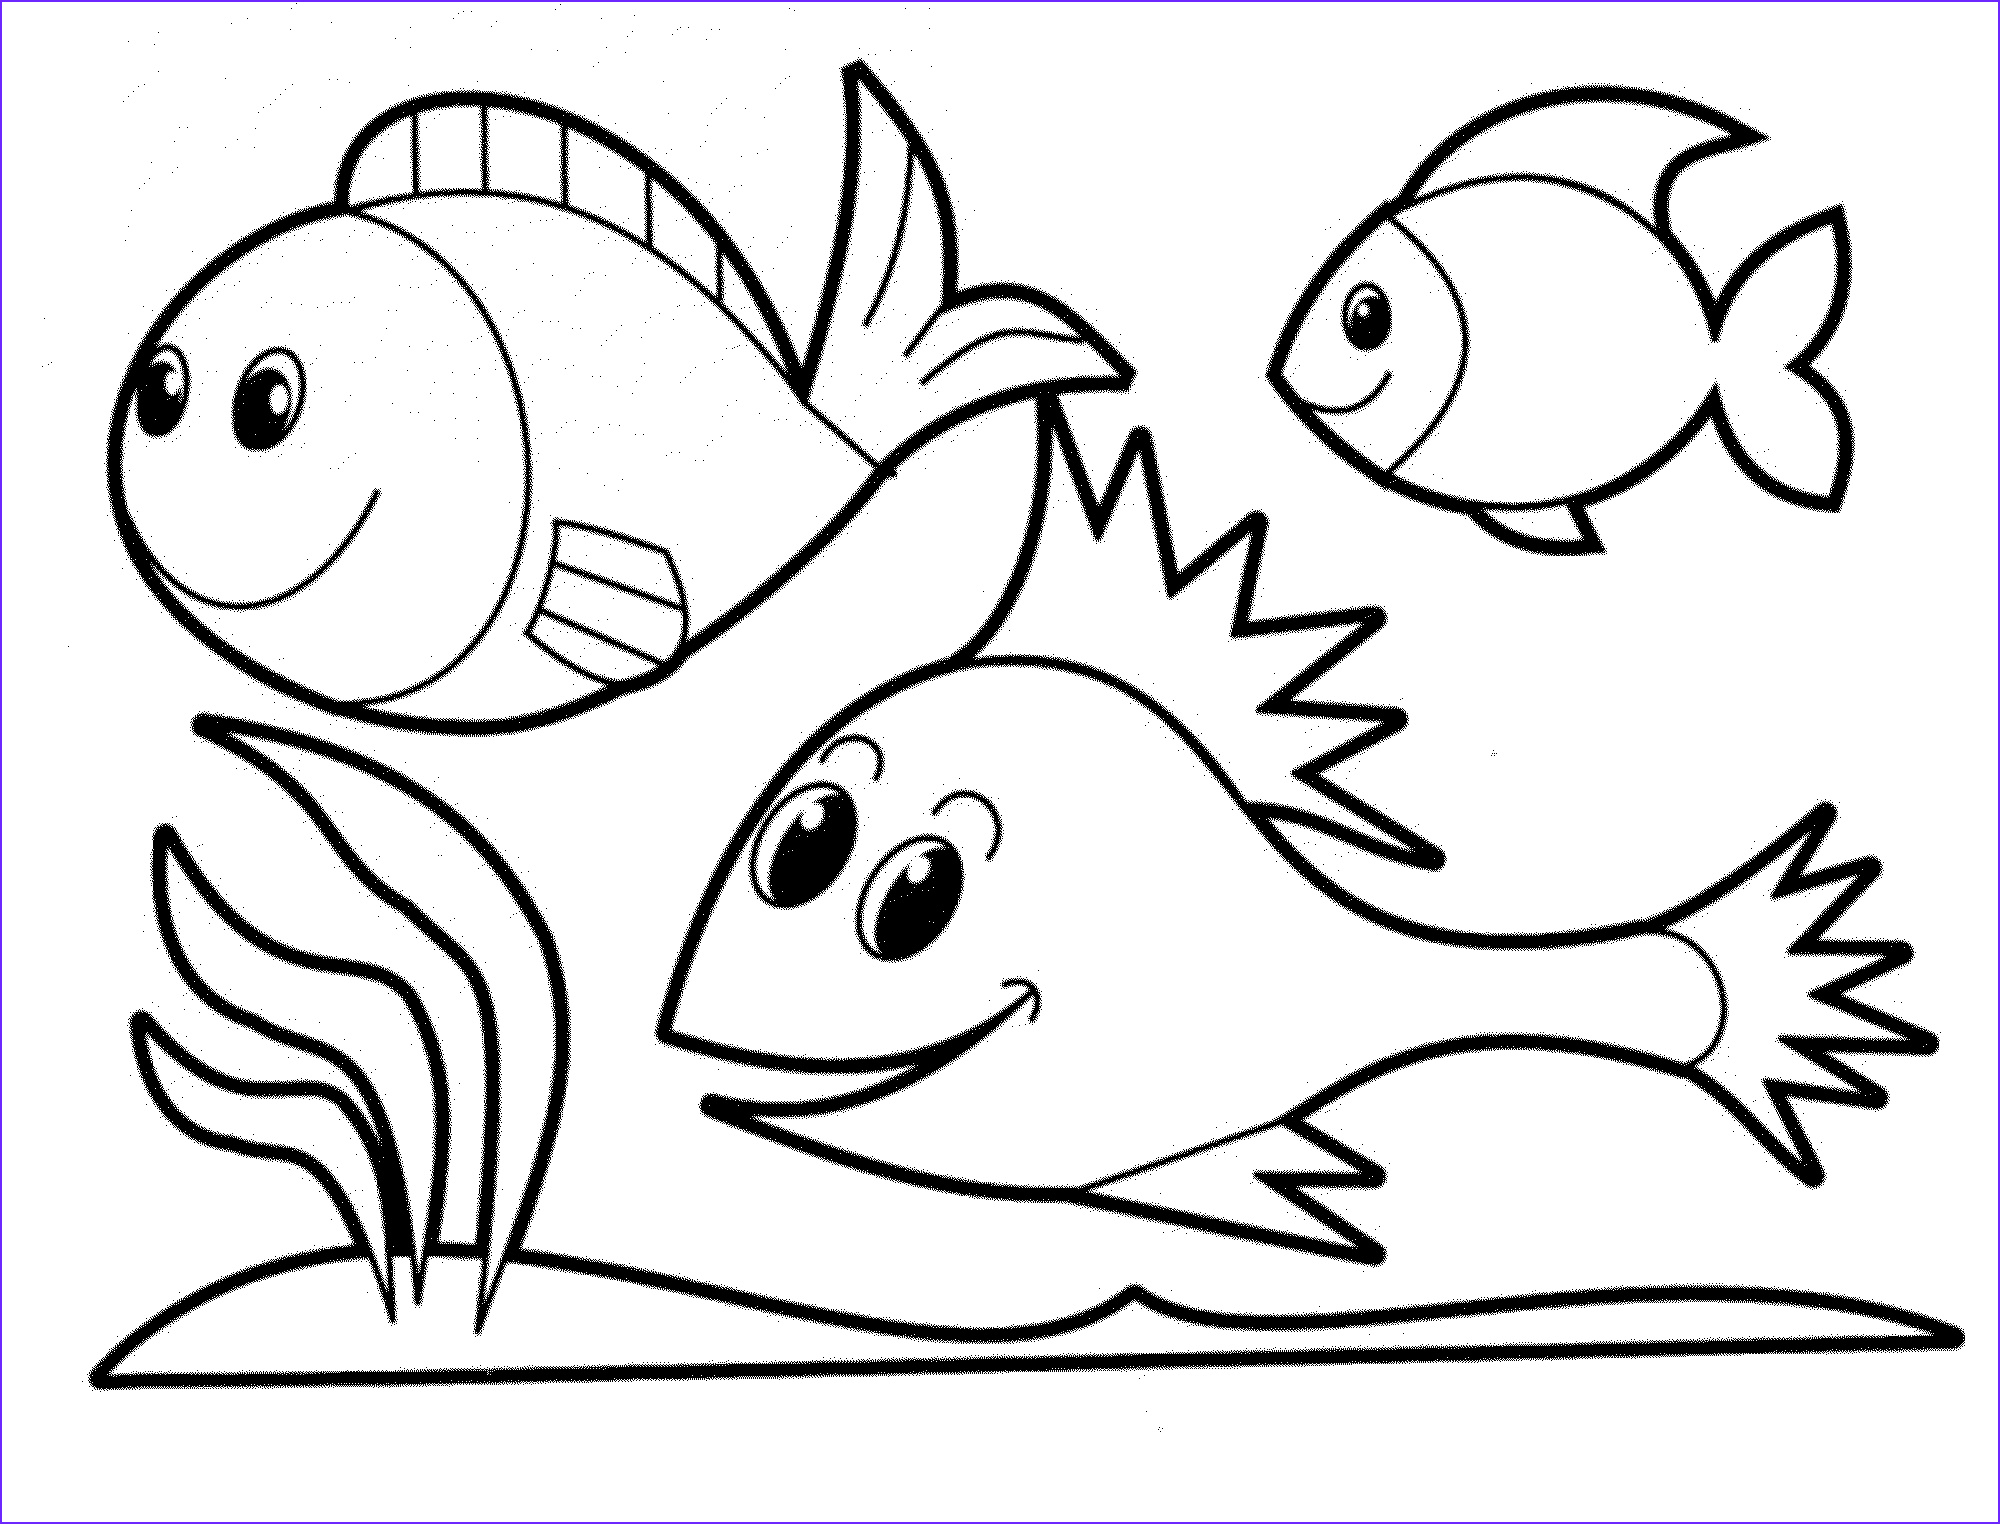 Fish Coloring Book Elegant Gallery Print & Download Cute and Educative Fish Coloring Pages